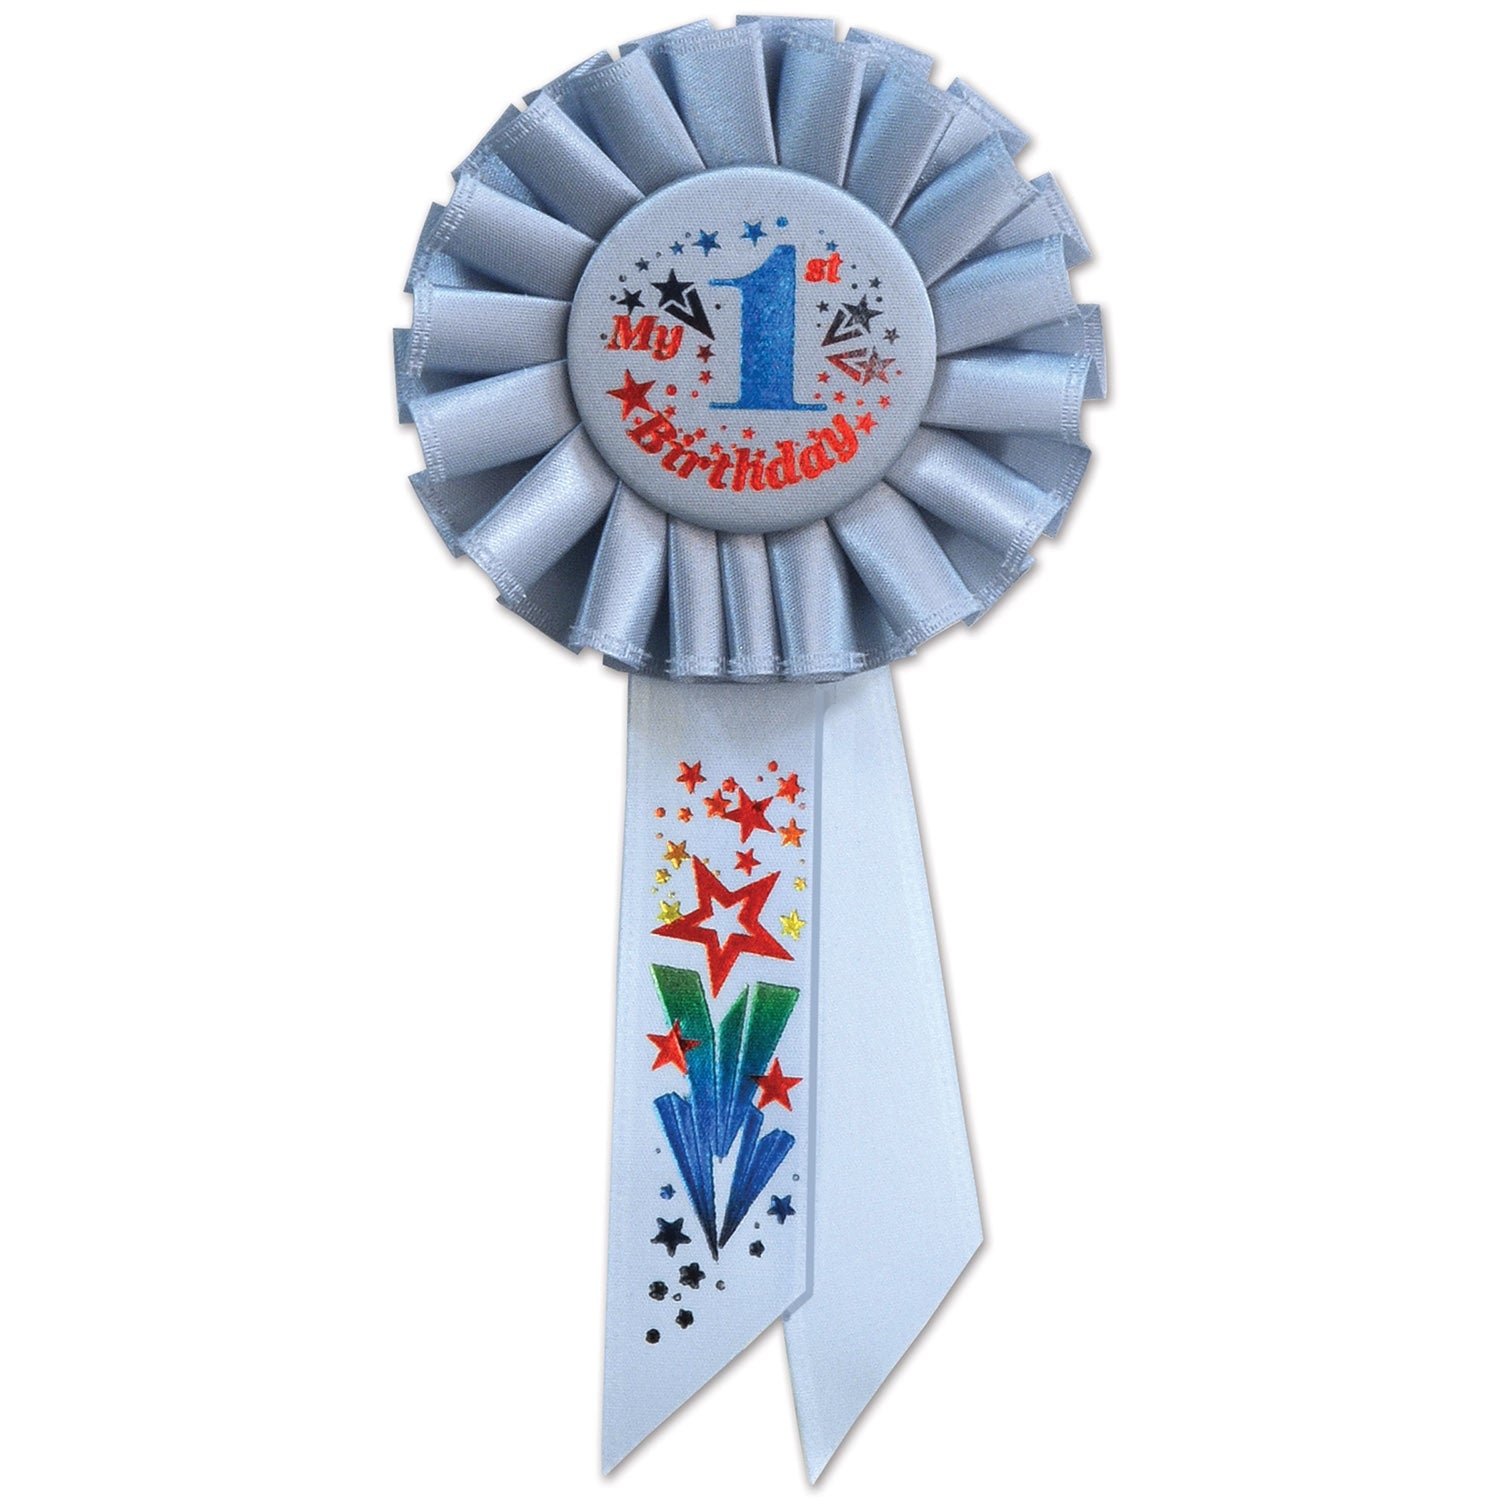 My 1st Birthday Rosette, blue by Beistle - 1st Birthday Party Decorations